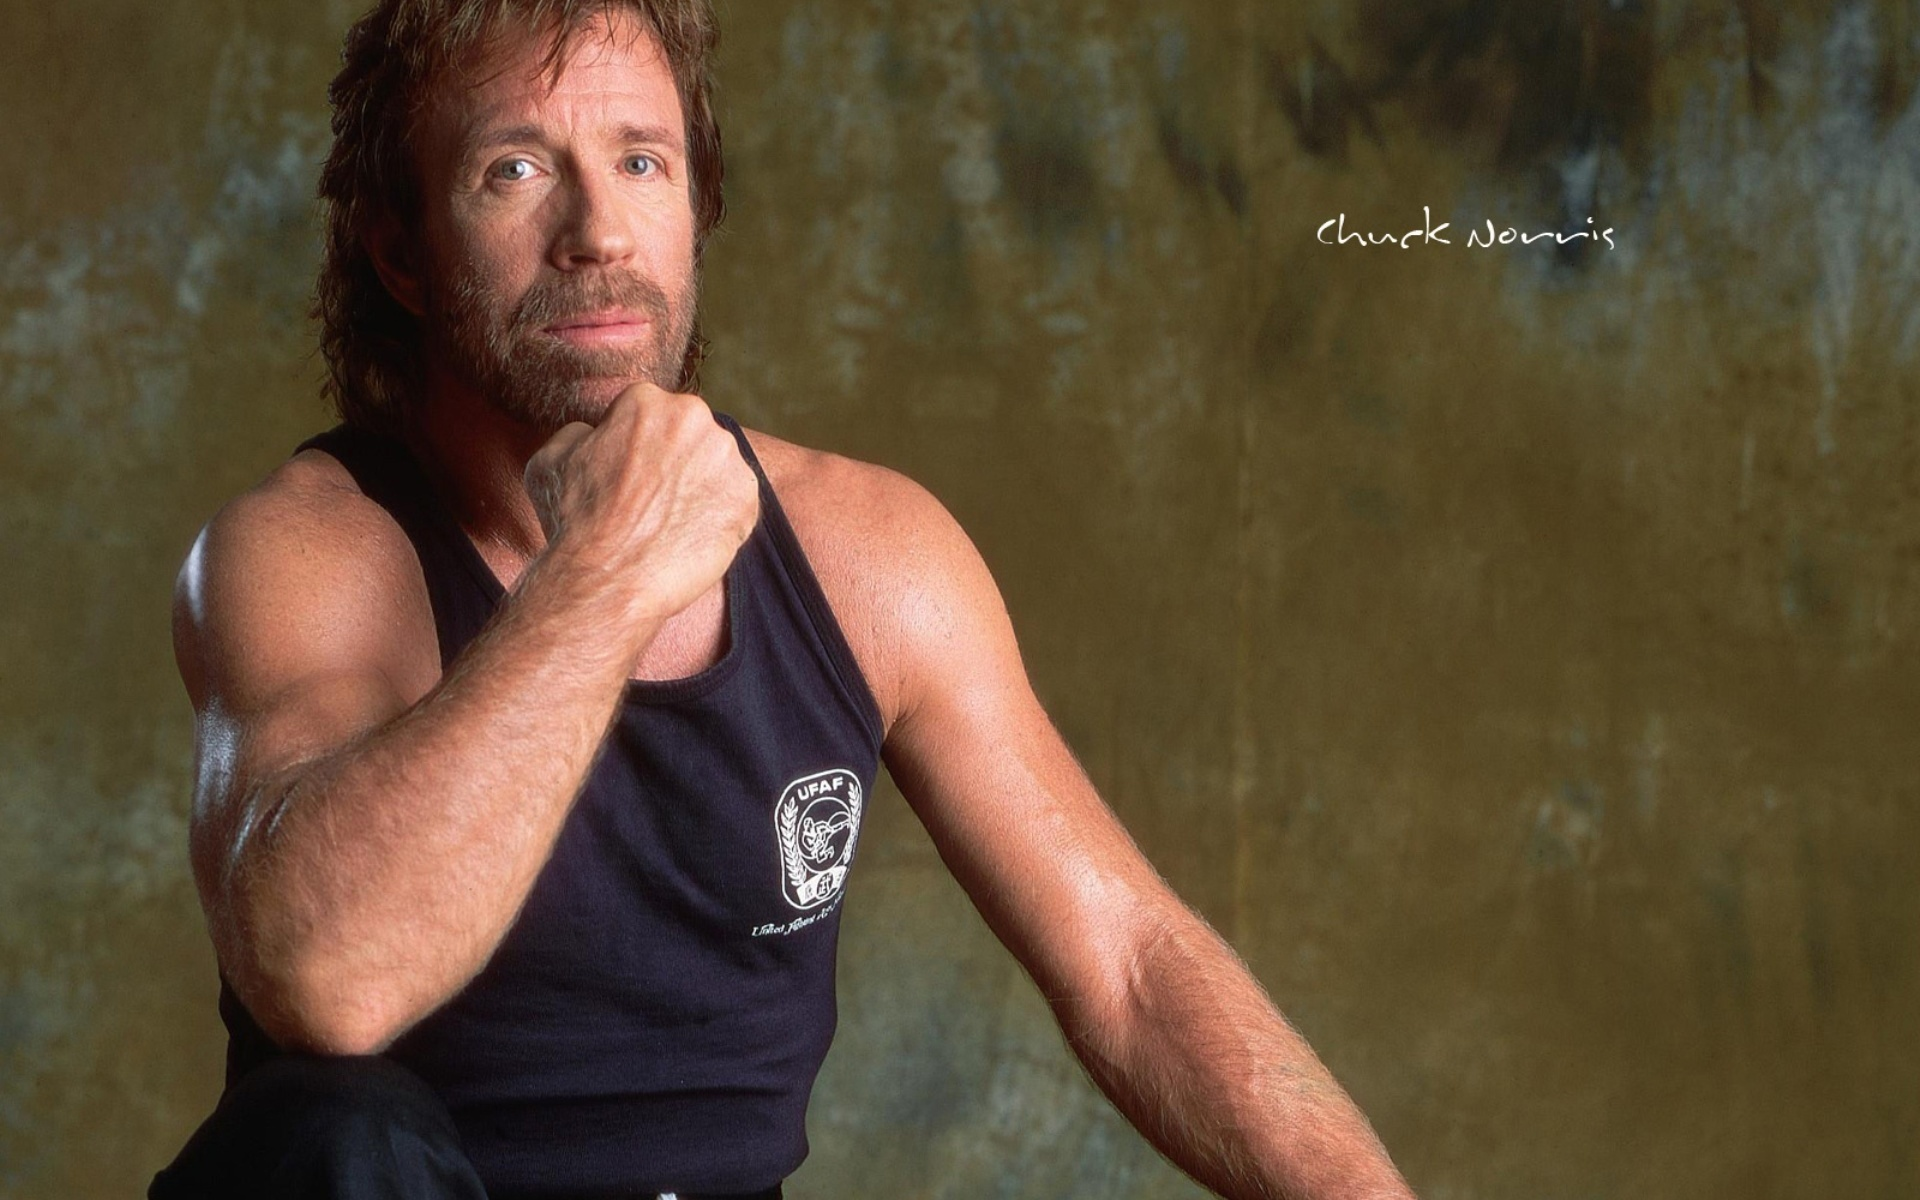 Iphone 8 Plus X Ray Wallpaper Chuck Norris Full Hd Wallpaper And Background Image